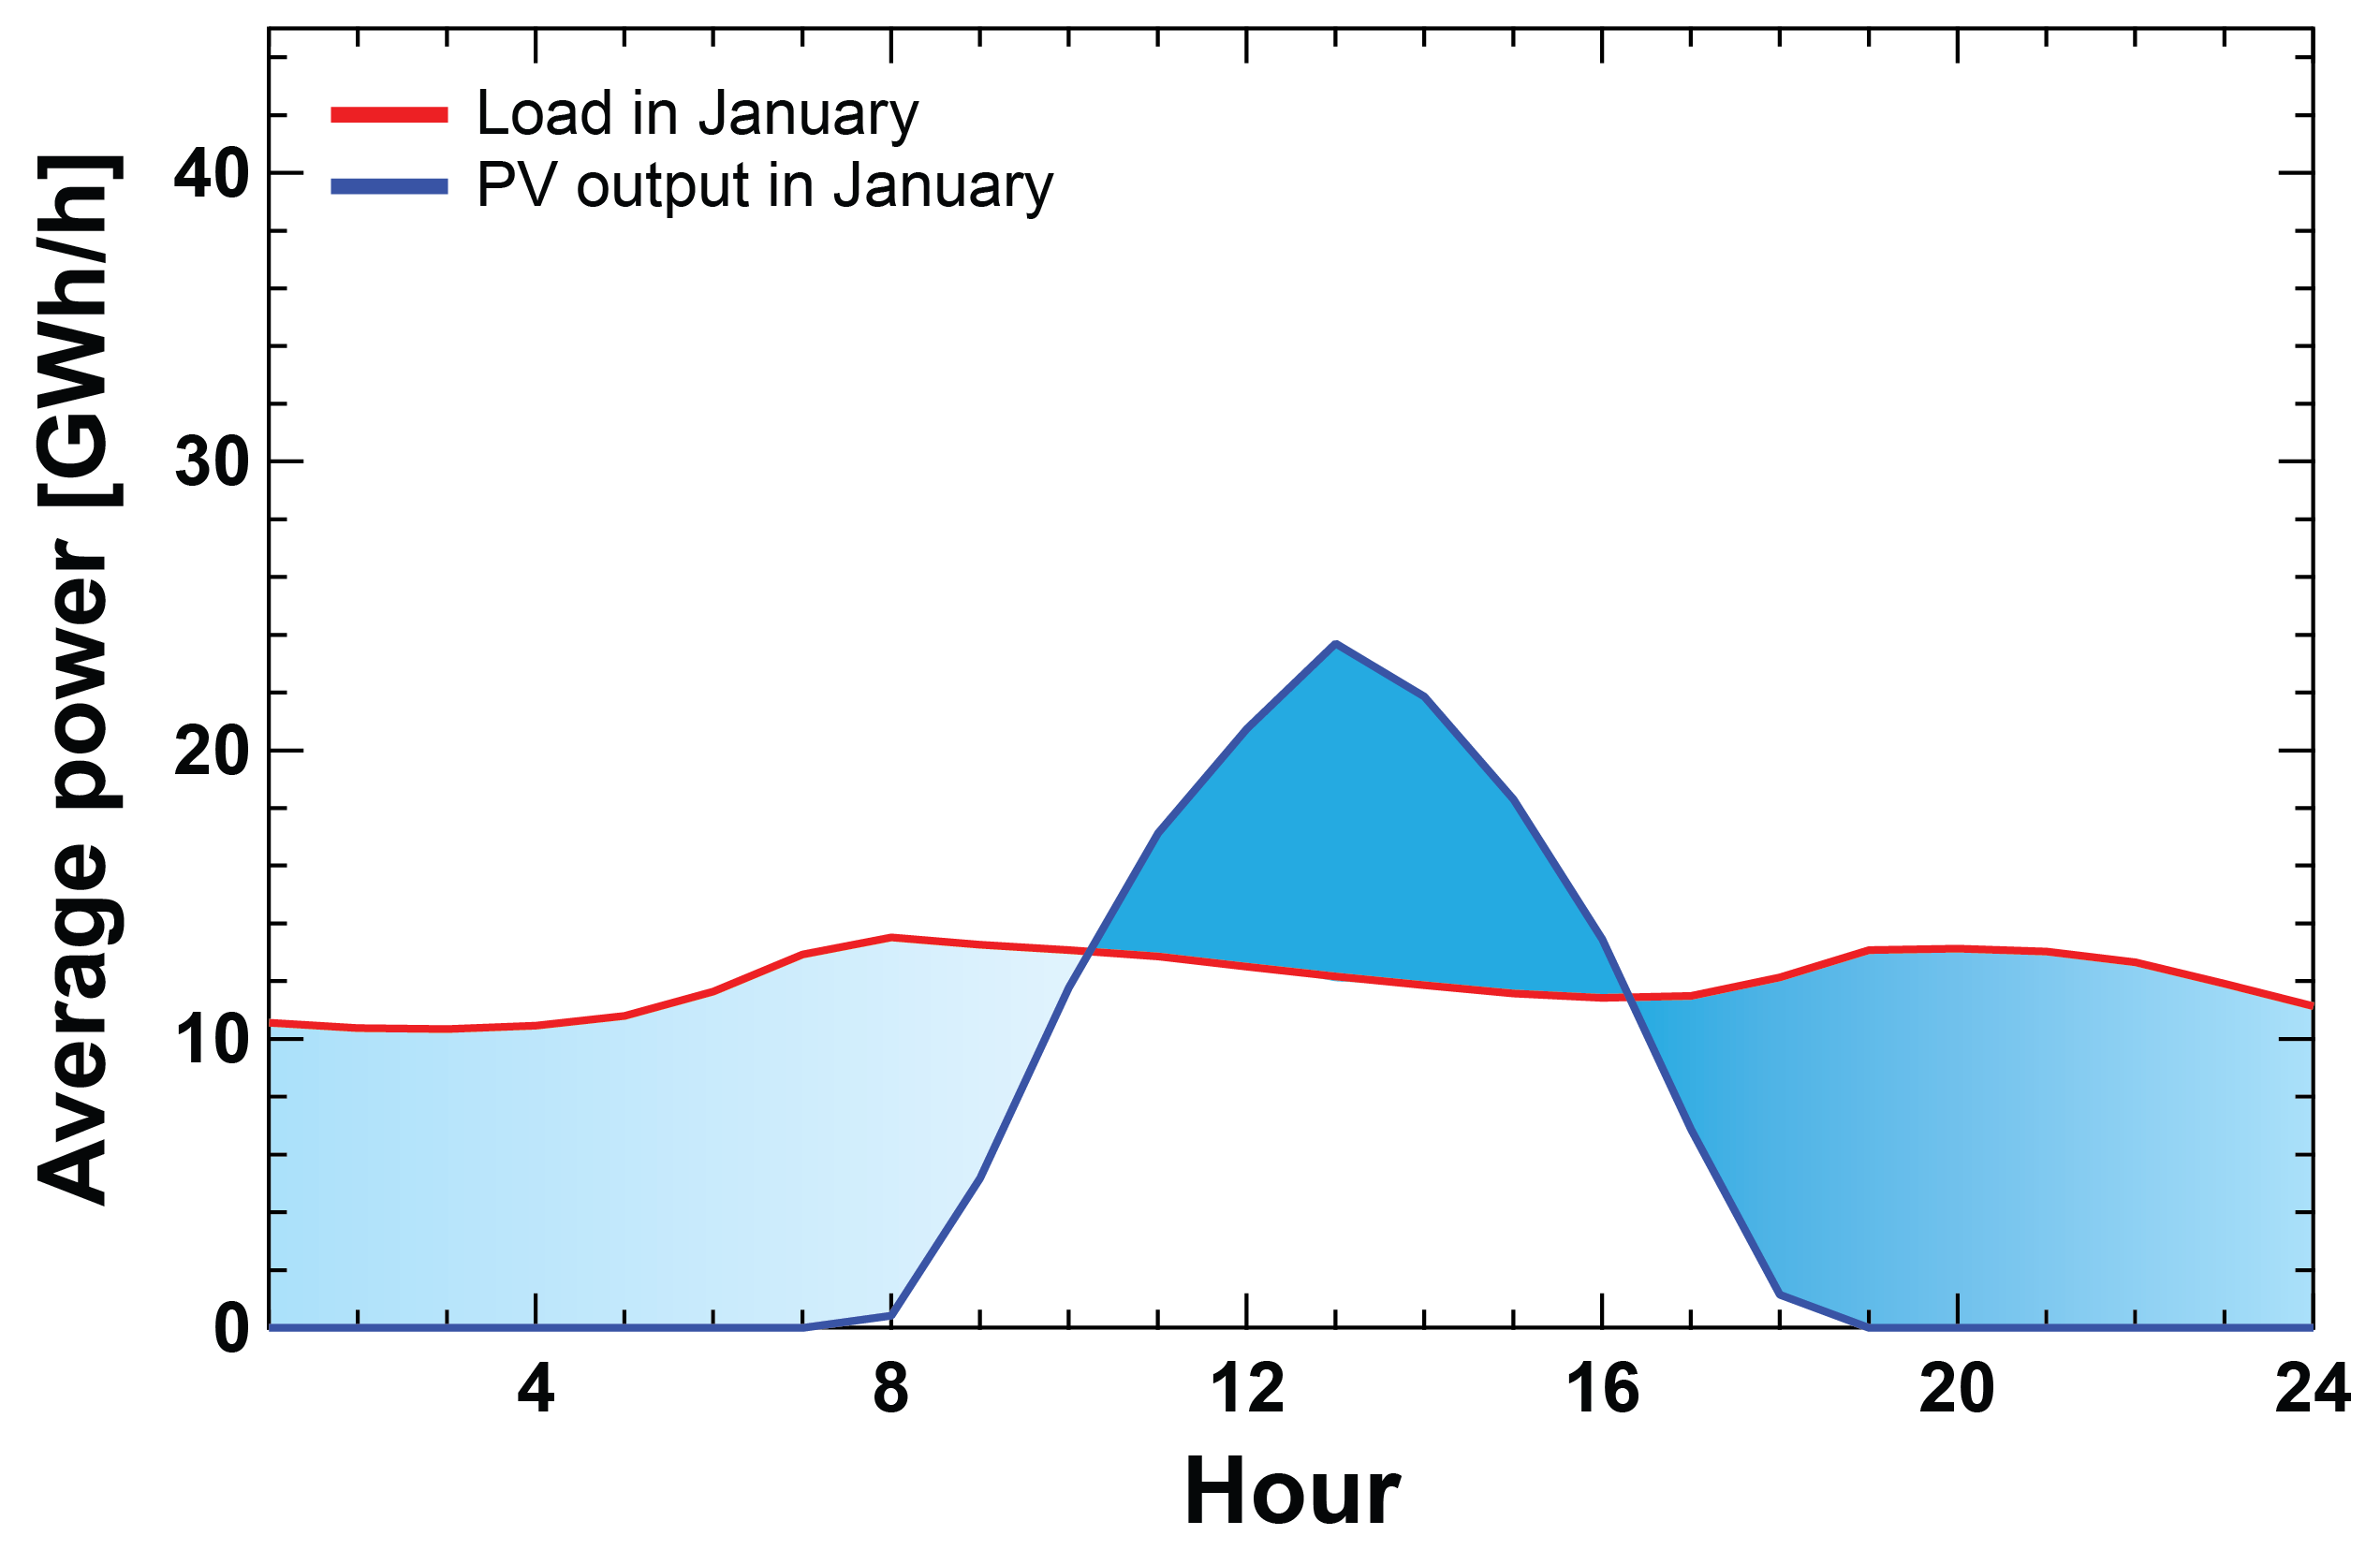 Plot of daily load and solar availability profiles for North Central ERCOT